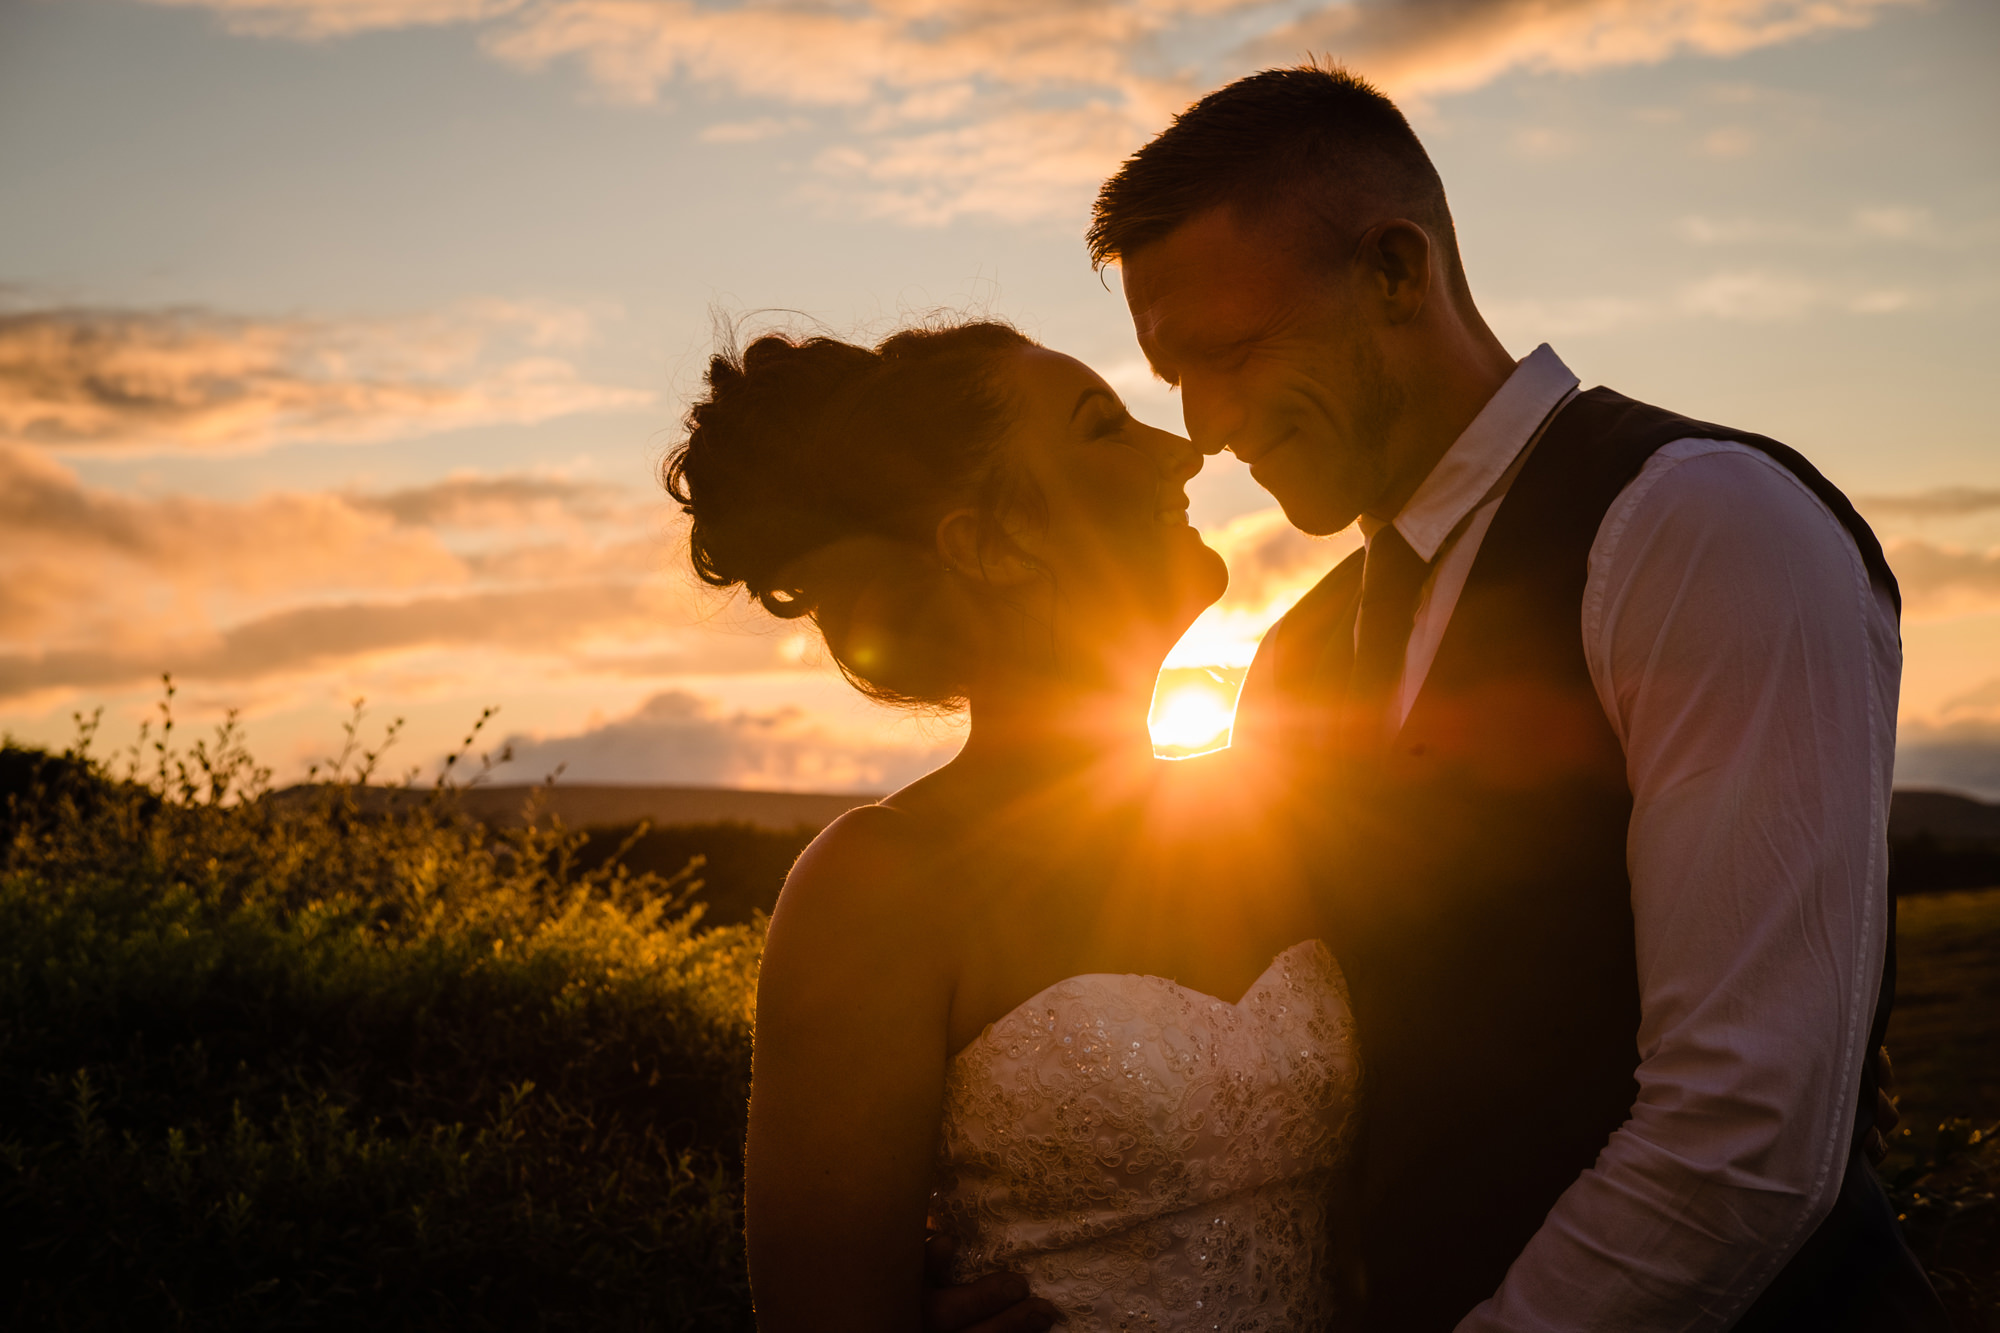 a newly married couple hug as the setting sun peaks through between them. huntsman inn wedding photography by emma and rich.